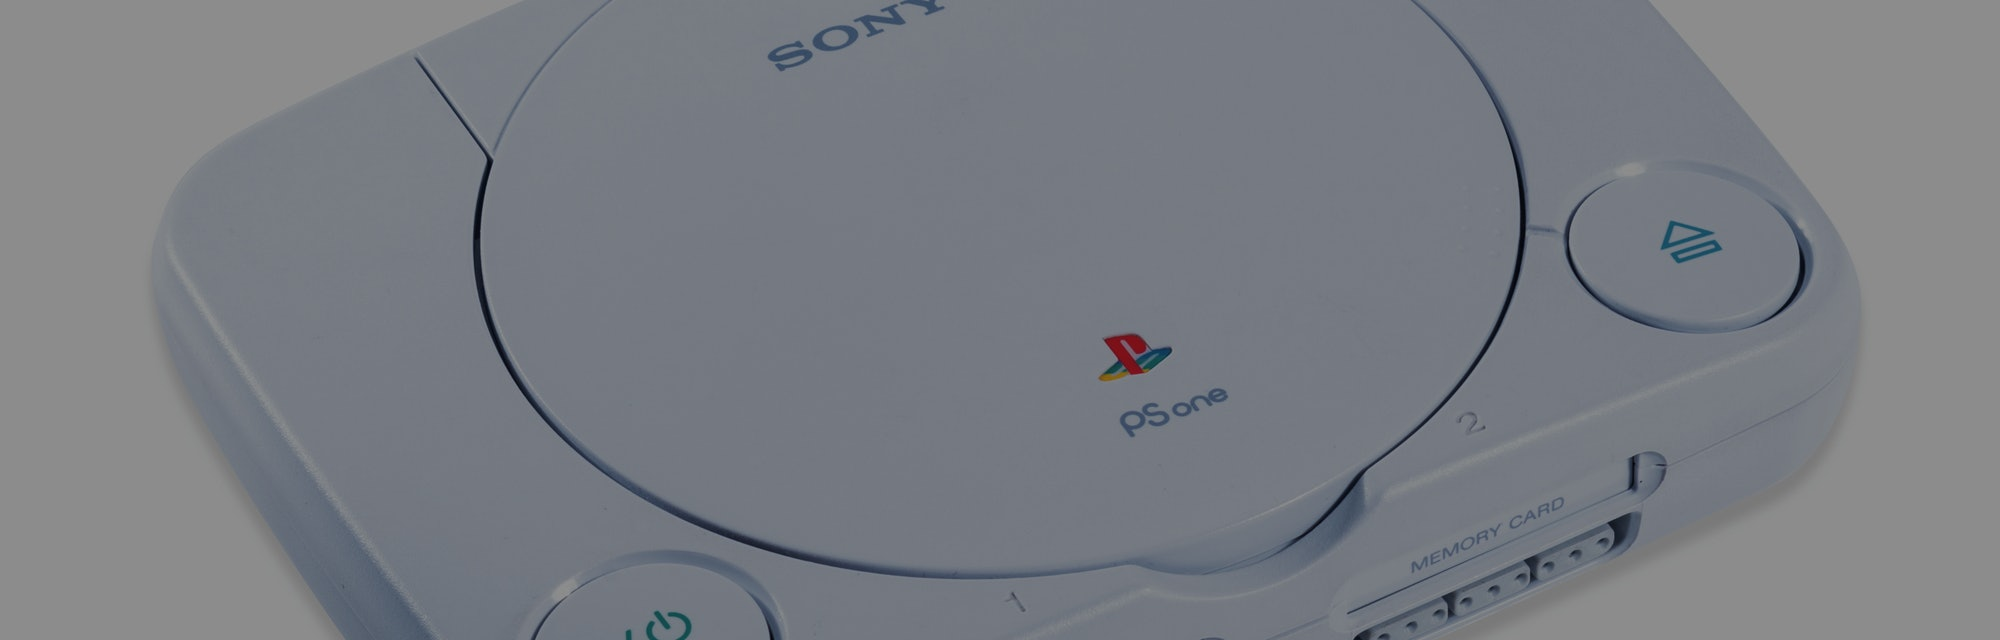 A 2000 Sony PlayStation (PS One model) home video game console, taken on June 19, 2018. (Photo by Ja...